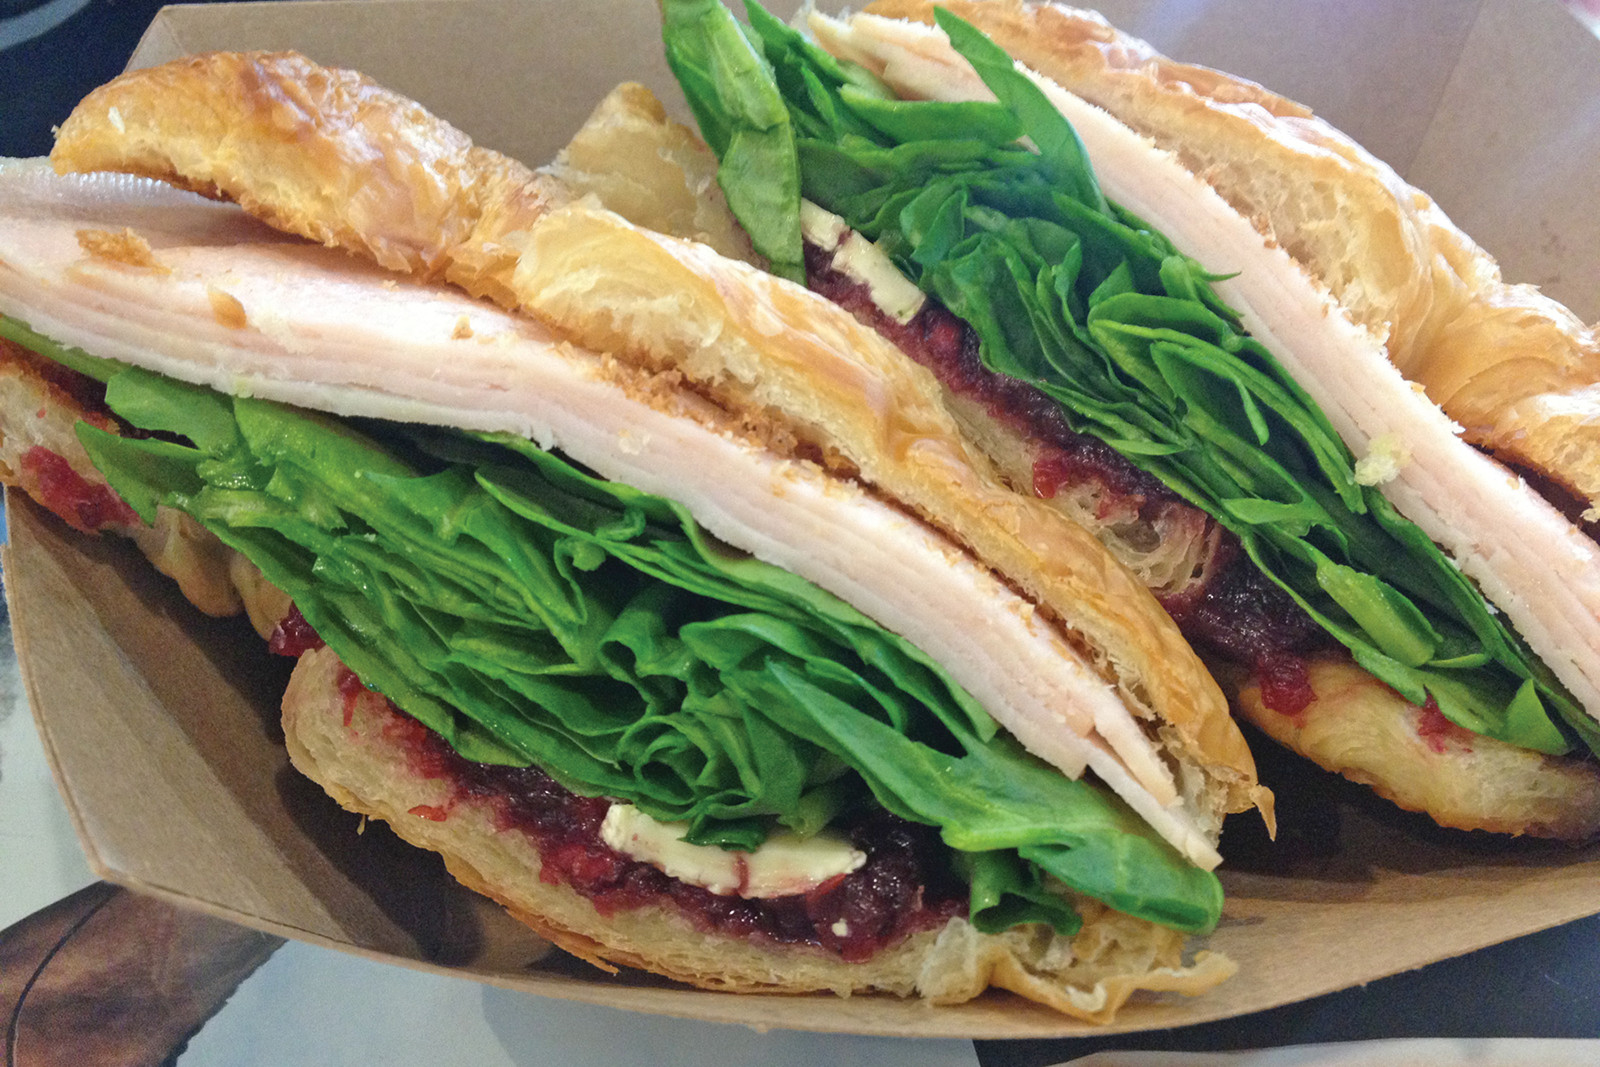 Turkey, brie, cranberry chutney and spinach on a flaky croissant is slightly reminiscent of Thanksgiving but light enough for a weekday lunch.